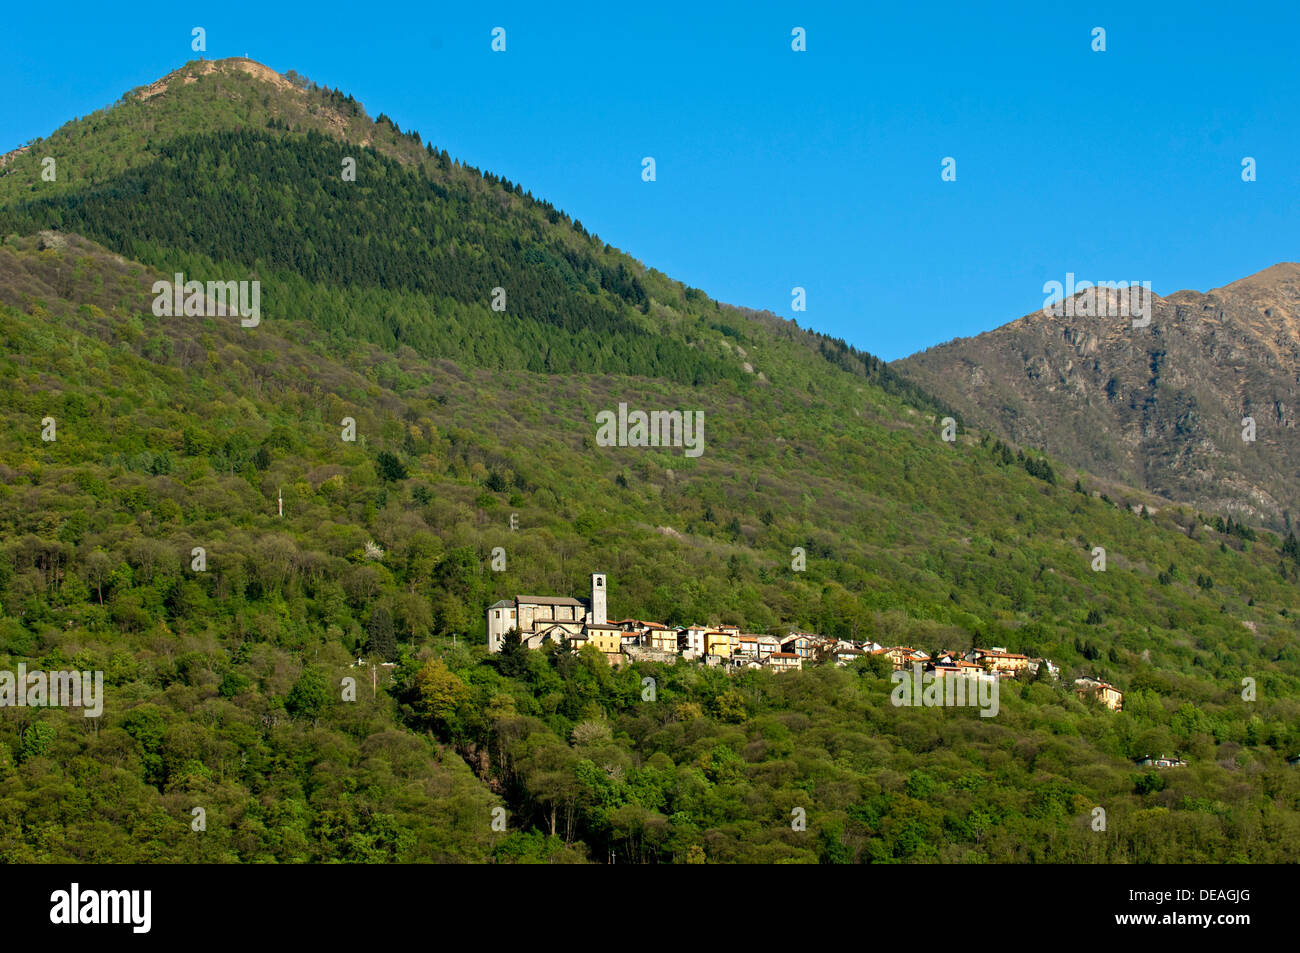 The hamlet of Sant'Agata at Cannobio in a deciduous forest on a mountain slope, Cannobio, Piedmont, Piemont, Italy Stock Photo